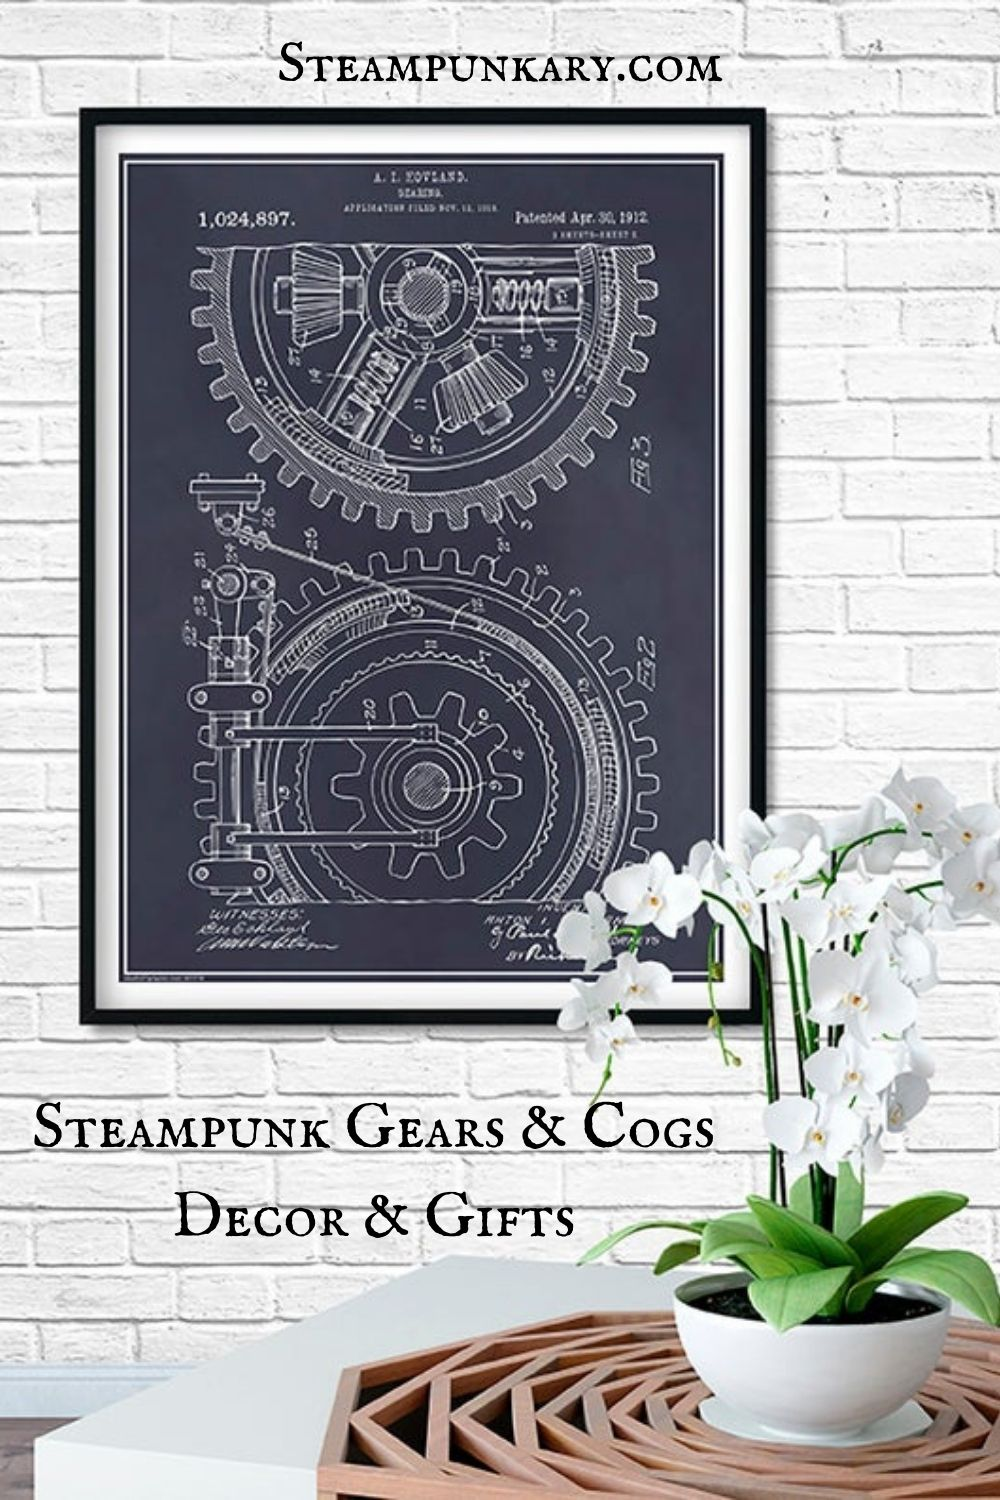 Steampunk Gears and Cogs Decor and Gifts